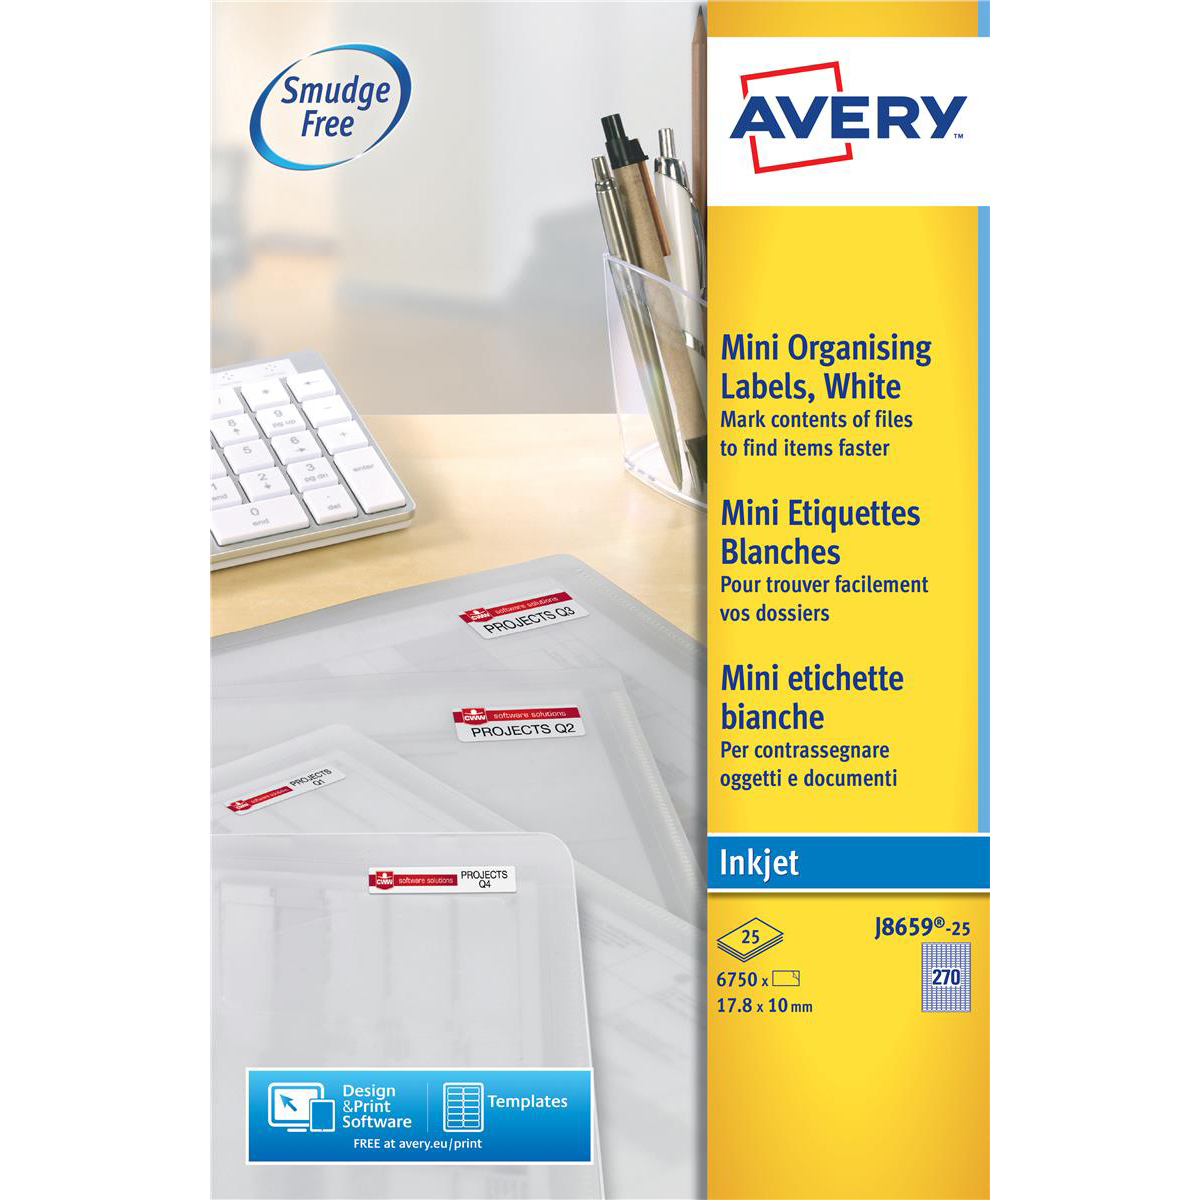 Avery Mini Multipurpose Labels Inkjet 270 per Sheet 17.8x10mm White Ref J8659REV-25 6750 Labels